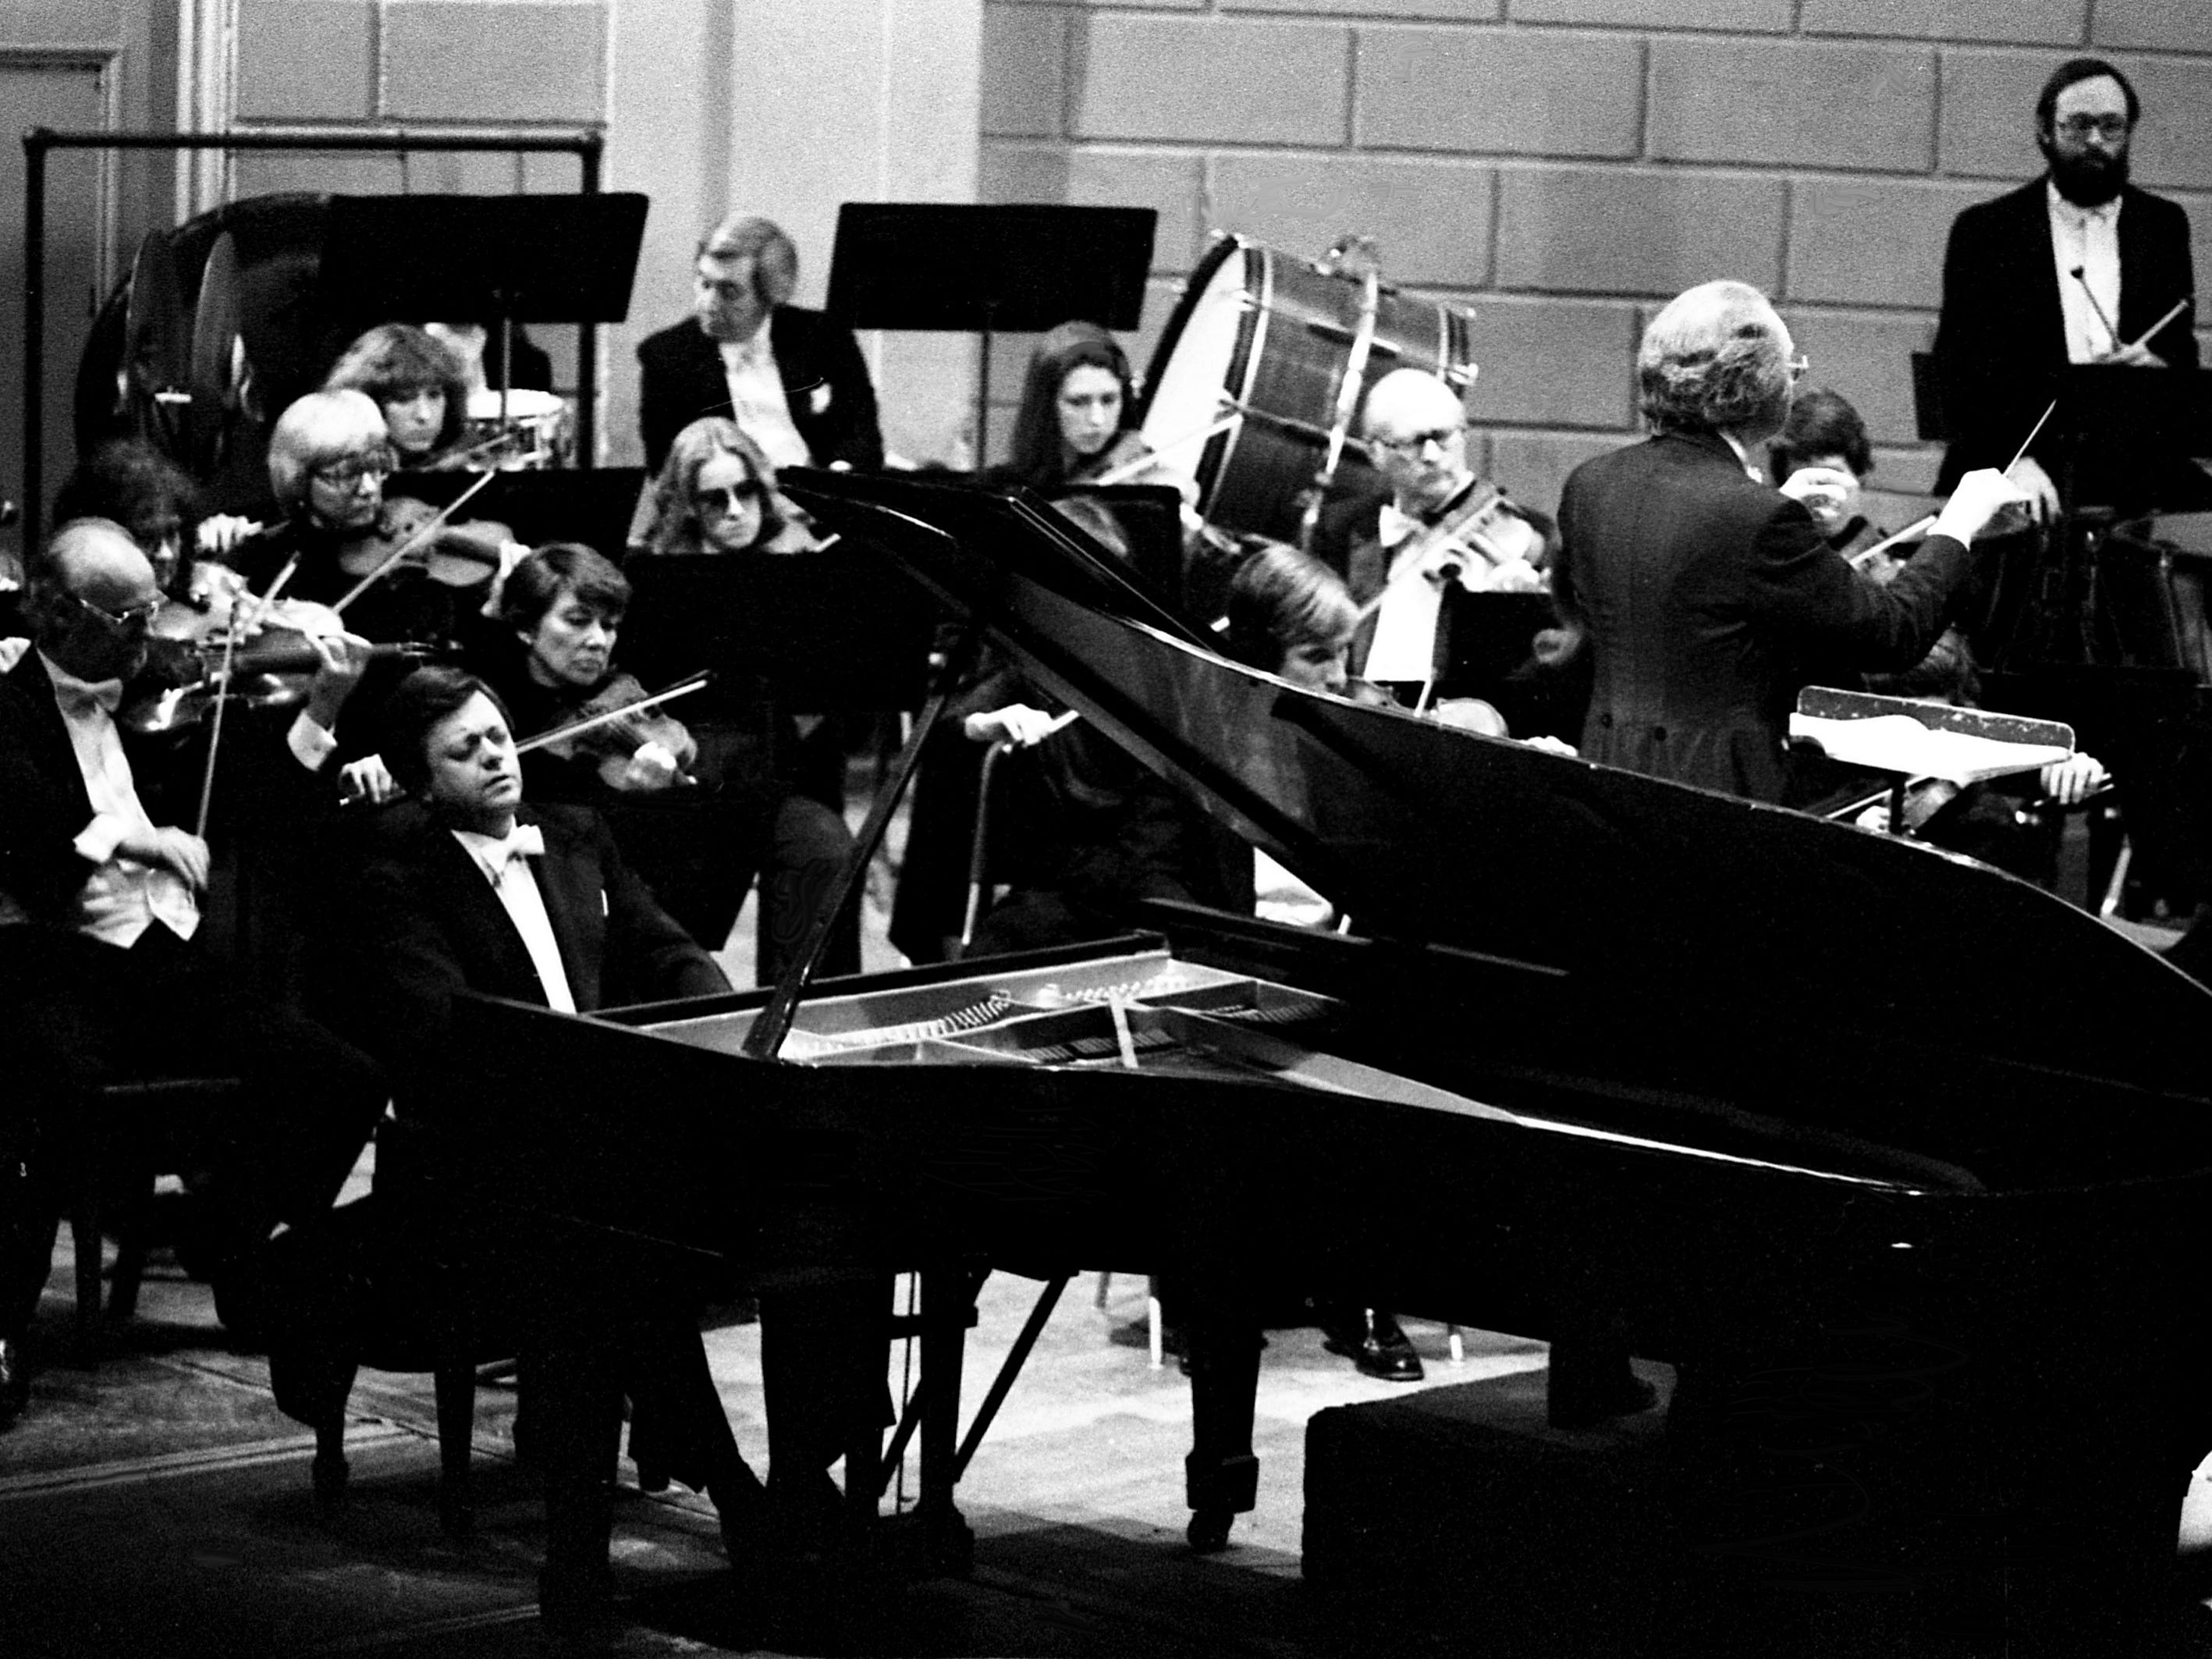 """Guest French pianist Philippe Entremont performs the """"Rachmaninov Concerto for Piano and Orchestra No. 3"""" with the Nashville Symphony on April 5, 1979, at the War Memorial Auditorium. The concert marked the close of the Symphony's 1978-79 season."""